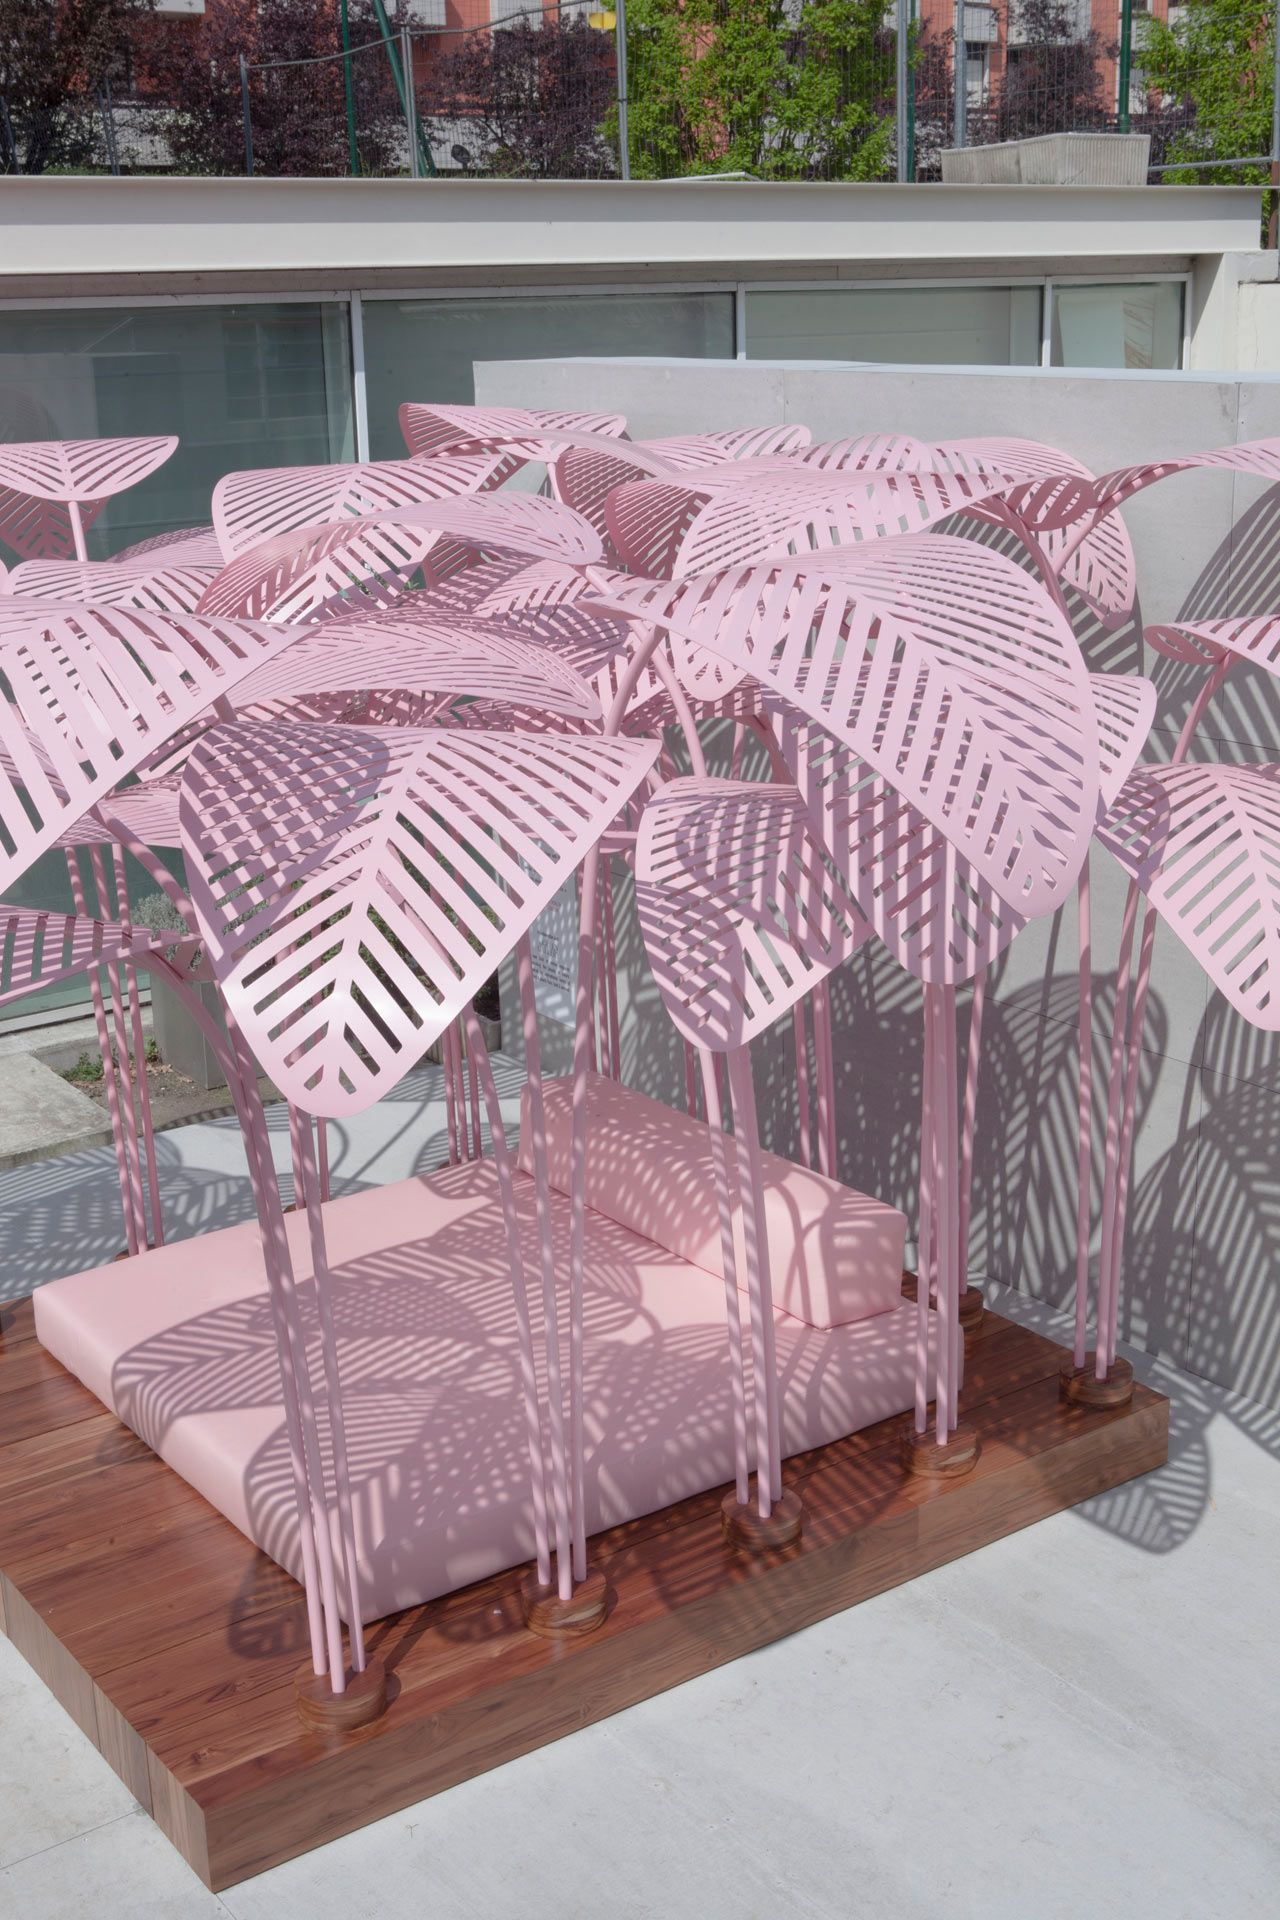 Le Refuge, a pink, jungle-like daybed designed by Parisian/Italian artist and designer Marc Ange at the Wallpaper* Handmade exhibition space in collaboration with The Invisible Collection and Green Gallery